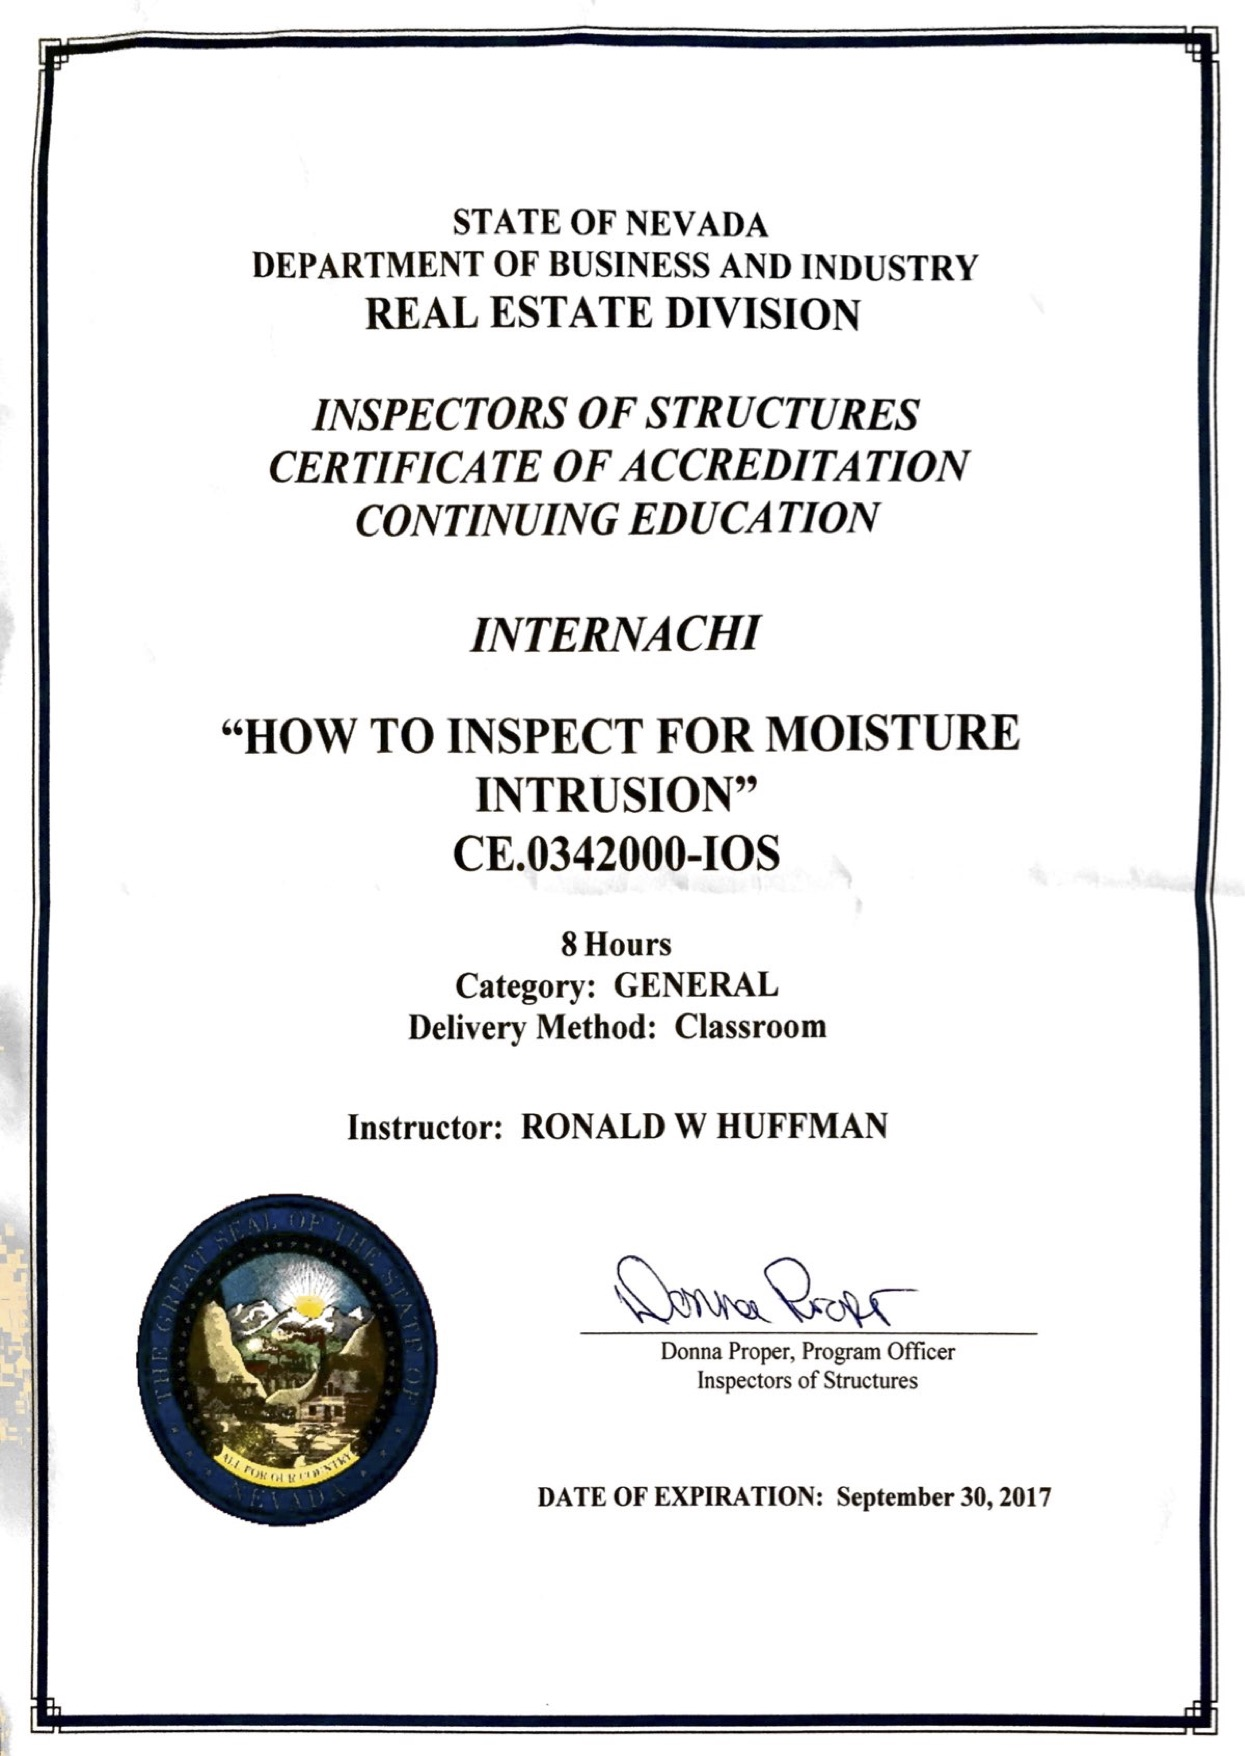 How to become a certified home inspector in nevada internachi ce0342000 ios 8 hours general classroom ronald huffman instructor expiration september 30 2017 1betcityfo Image collections